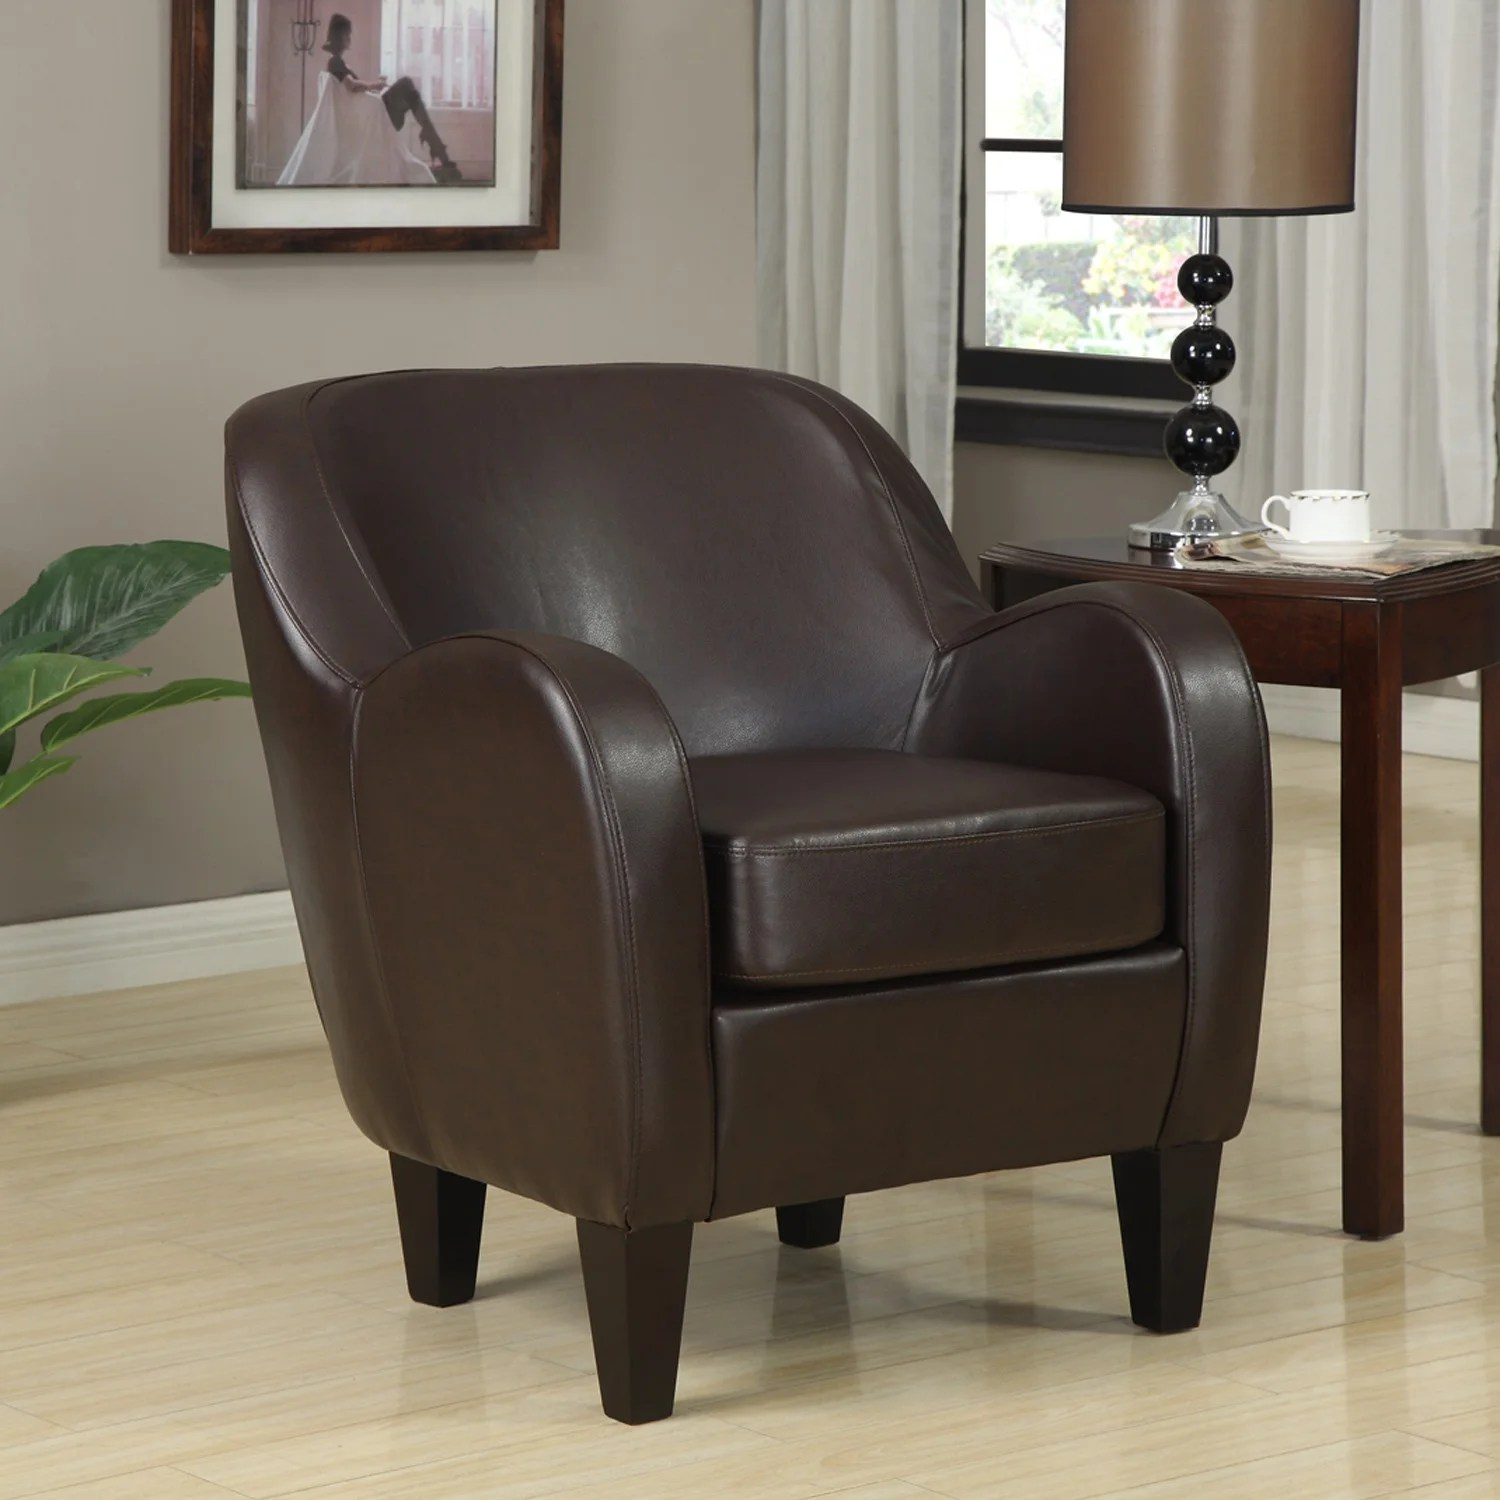 Overstock Chairs Bedford Bonded Leather Chair Overstock Shopping Great